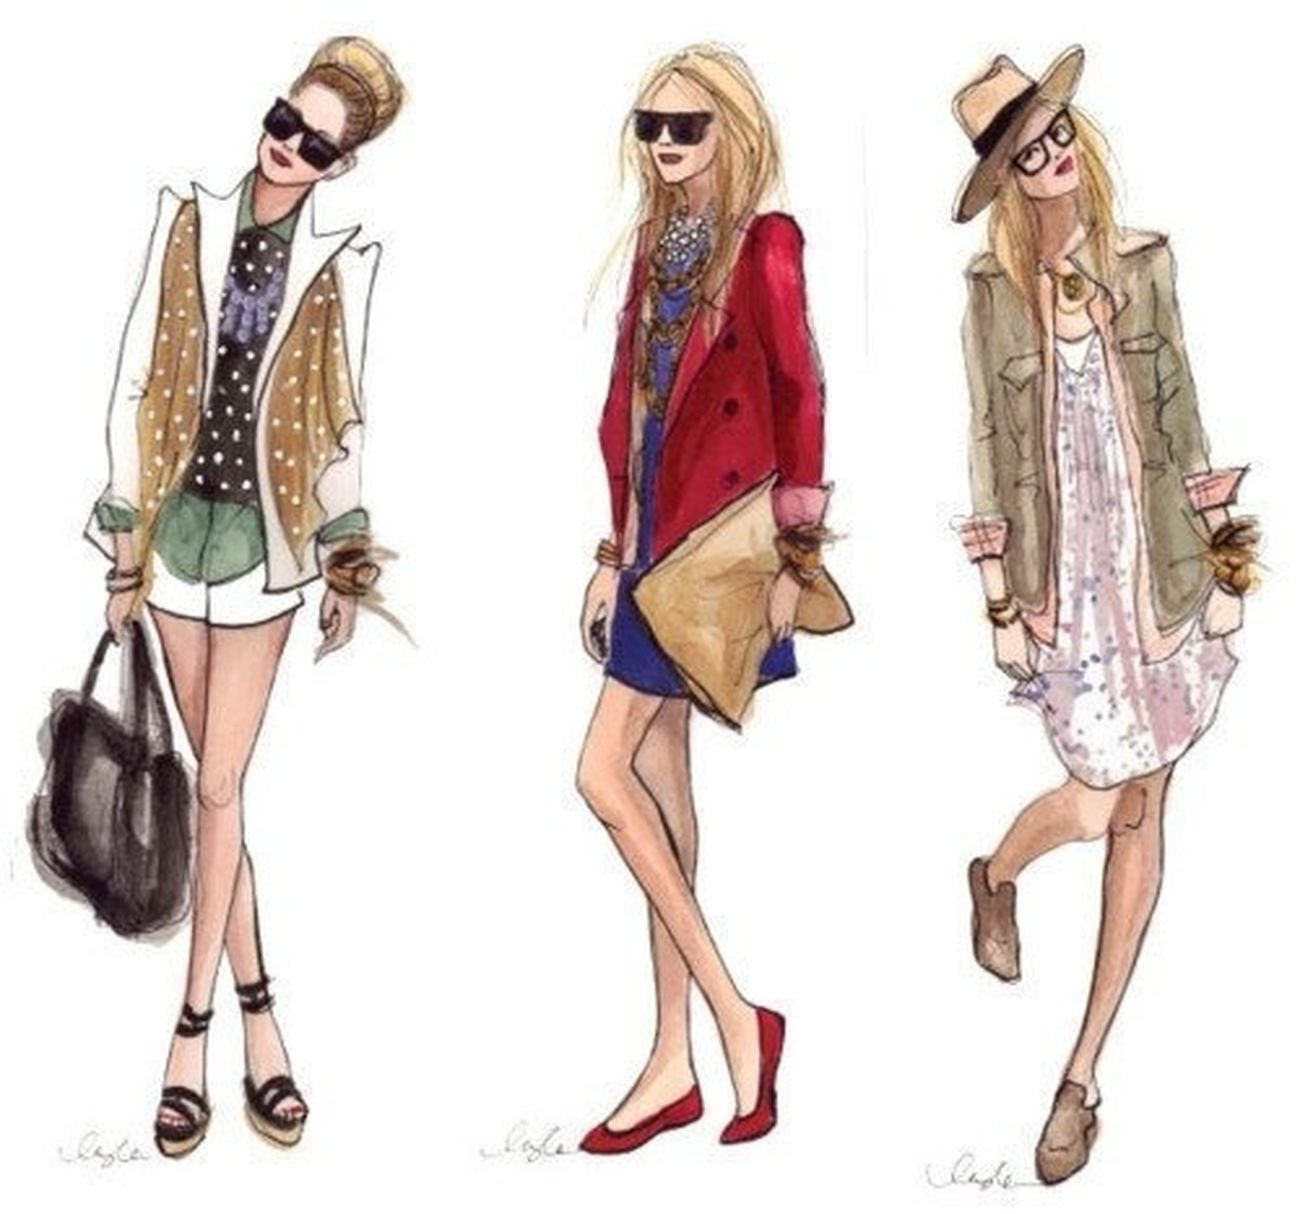 Fashion bloggers reviews — Get started